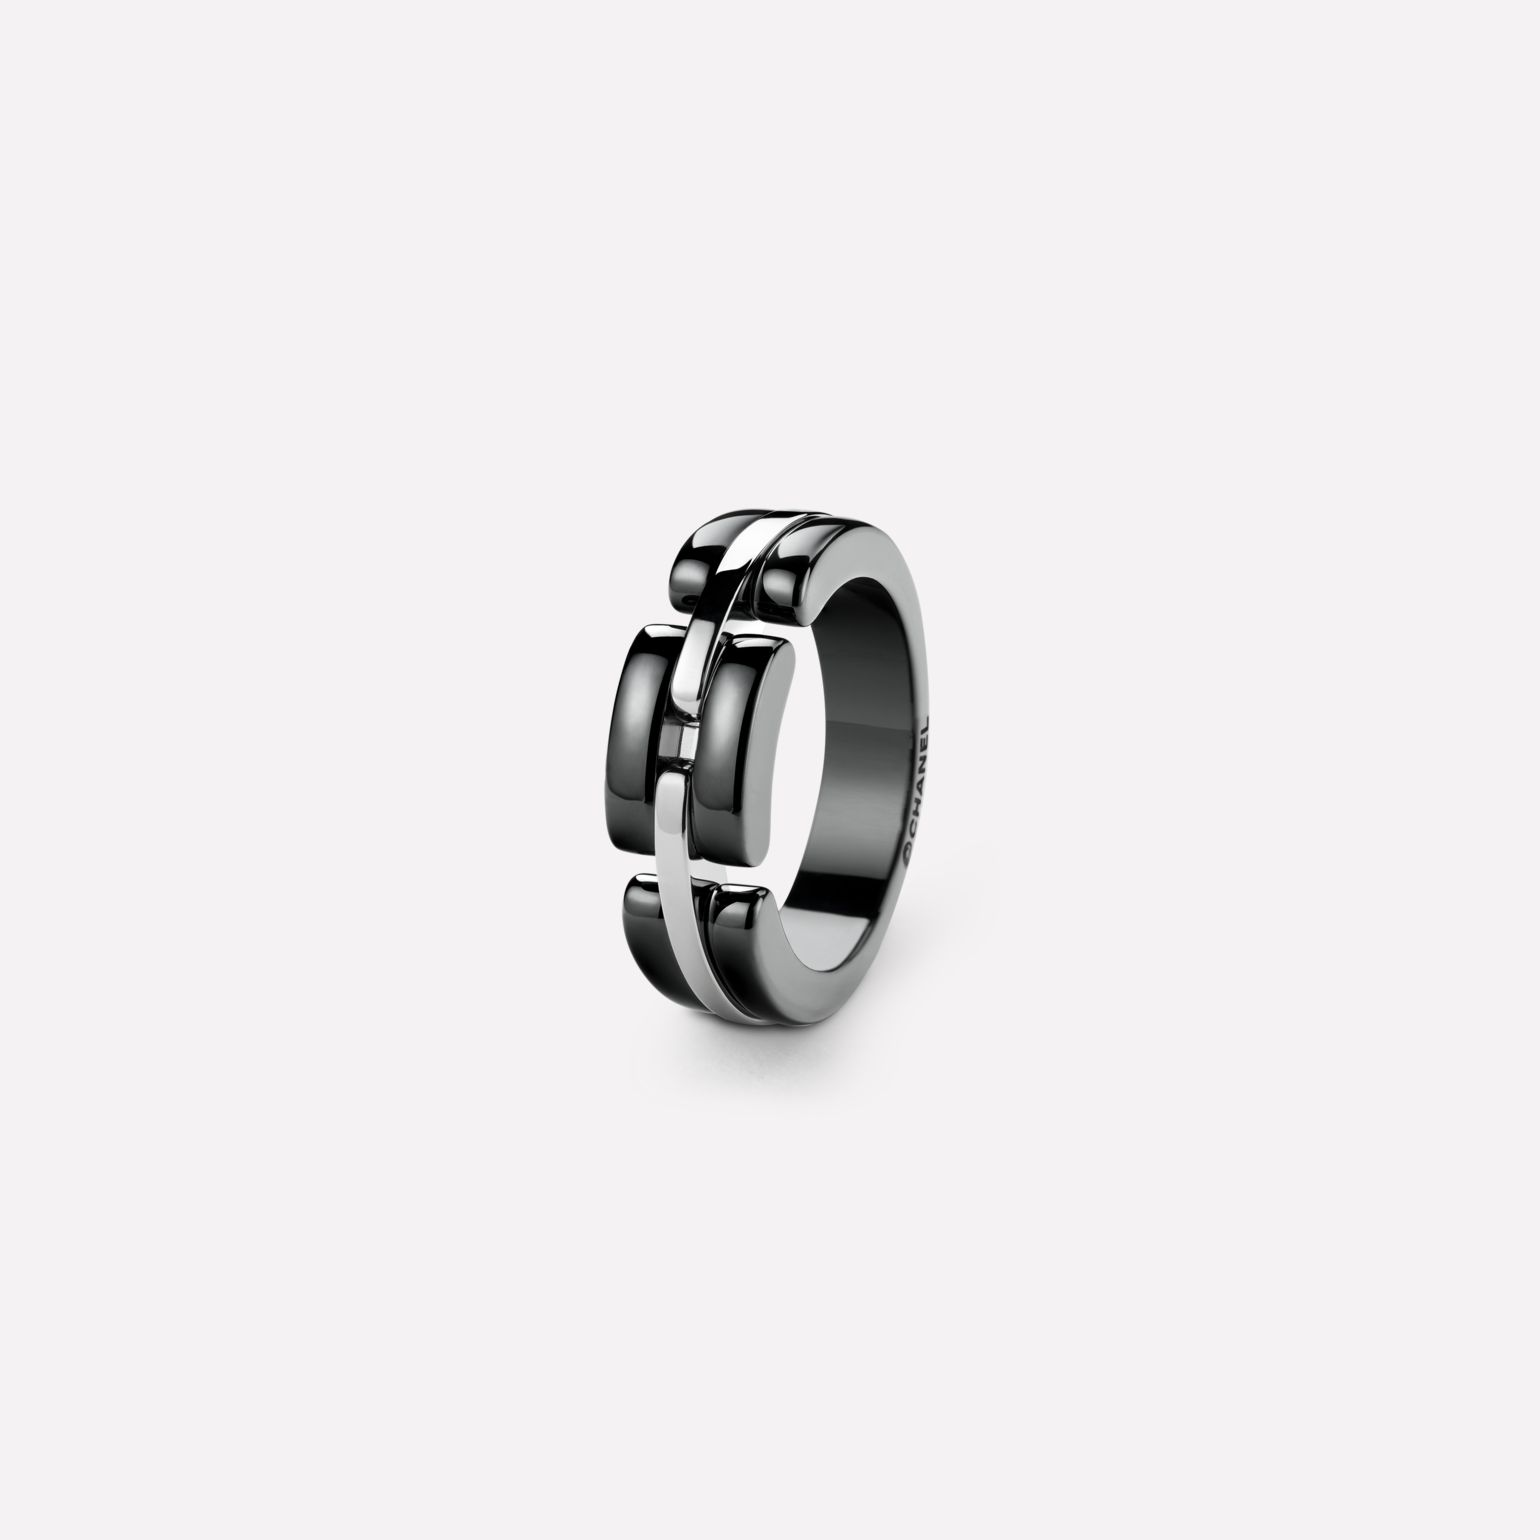 Ultra Ring Ultra ring in black ceramic and 18K white gold. Medium, rigid version.